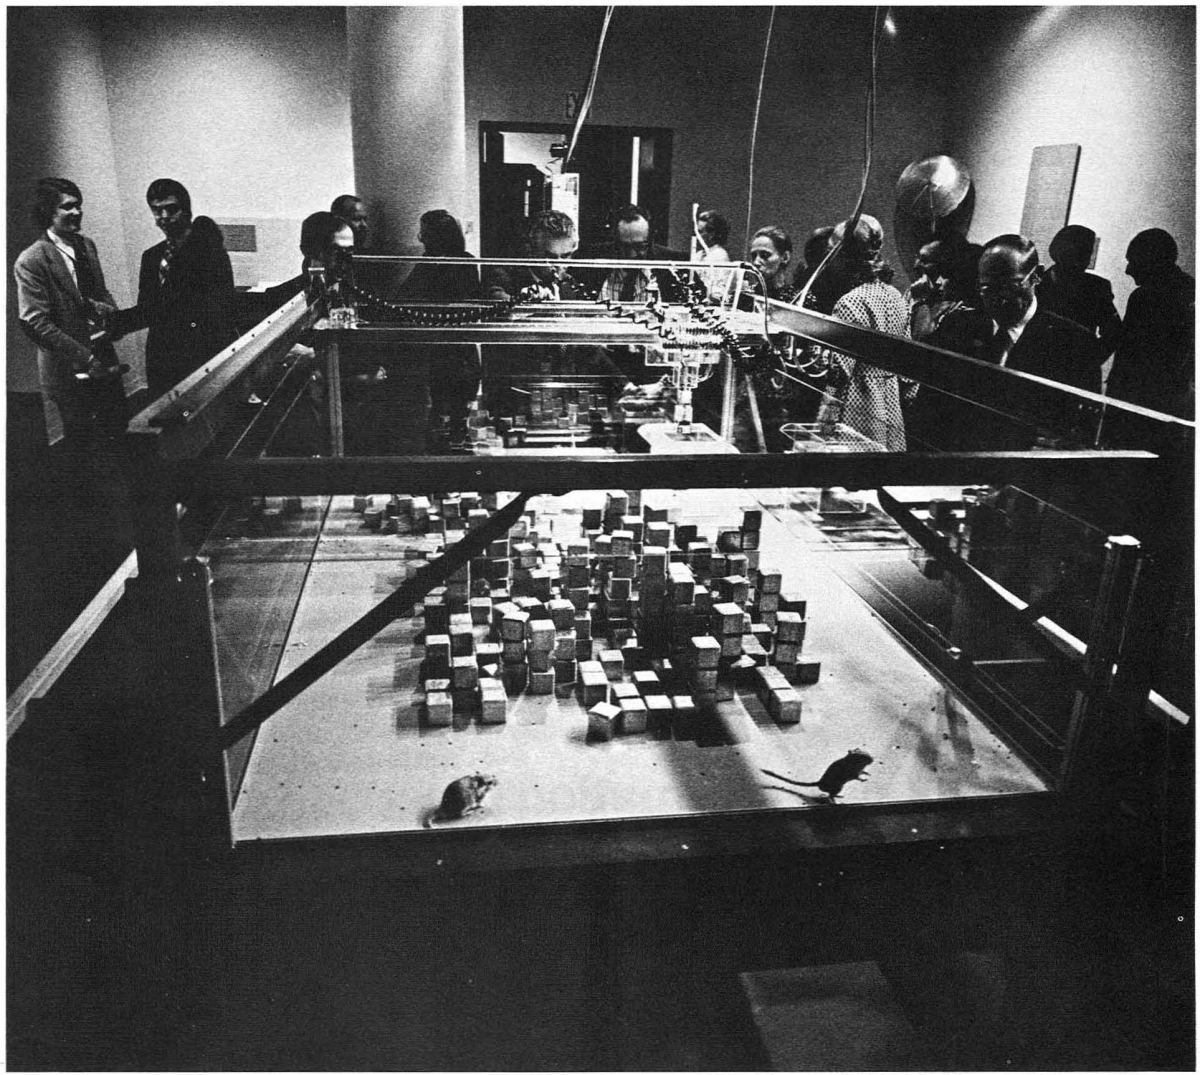 The 1970 experiment SEEK by the Architecture Machine Group. Photo from the catalog of the exhibition SOFTWARE at the New York Jewish Museum.